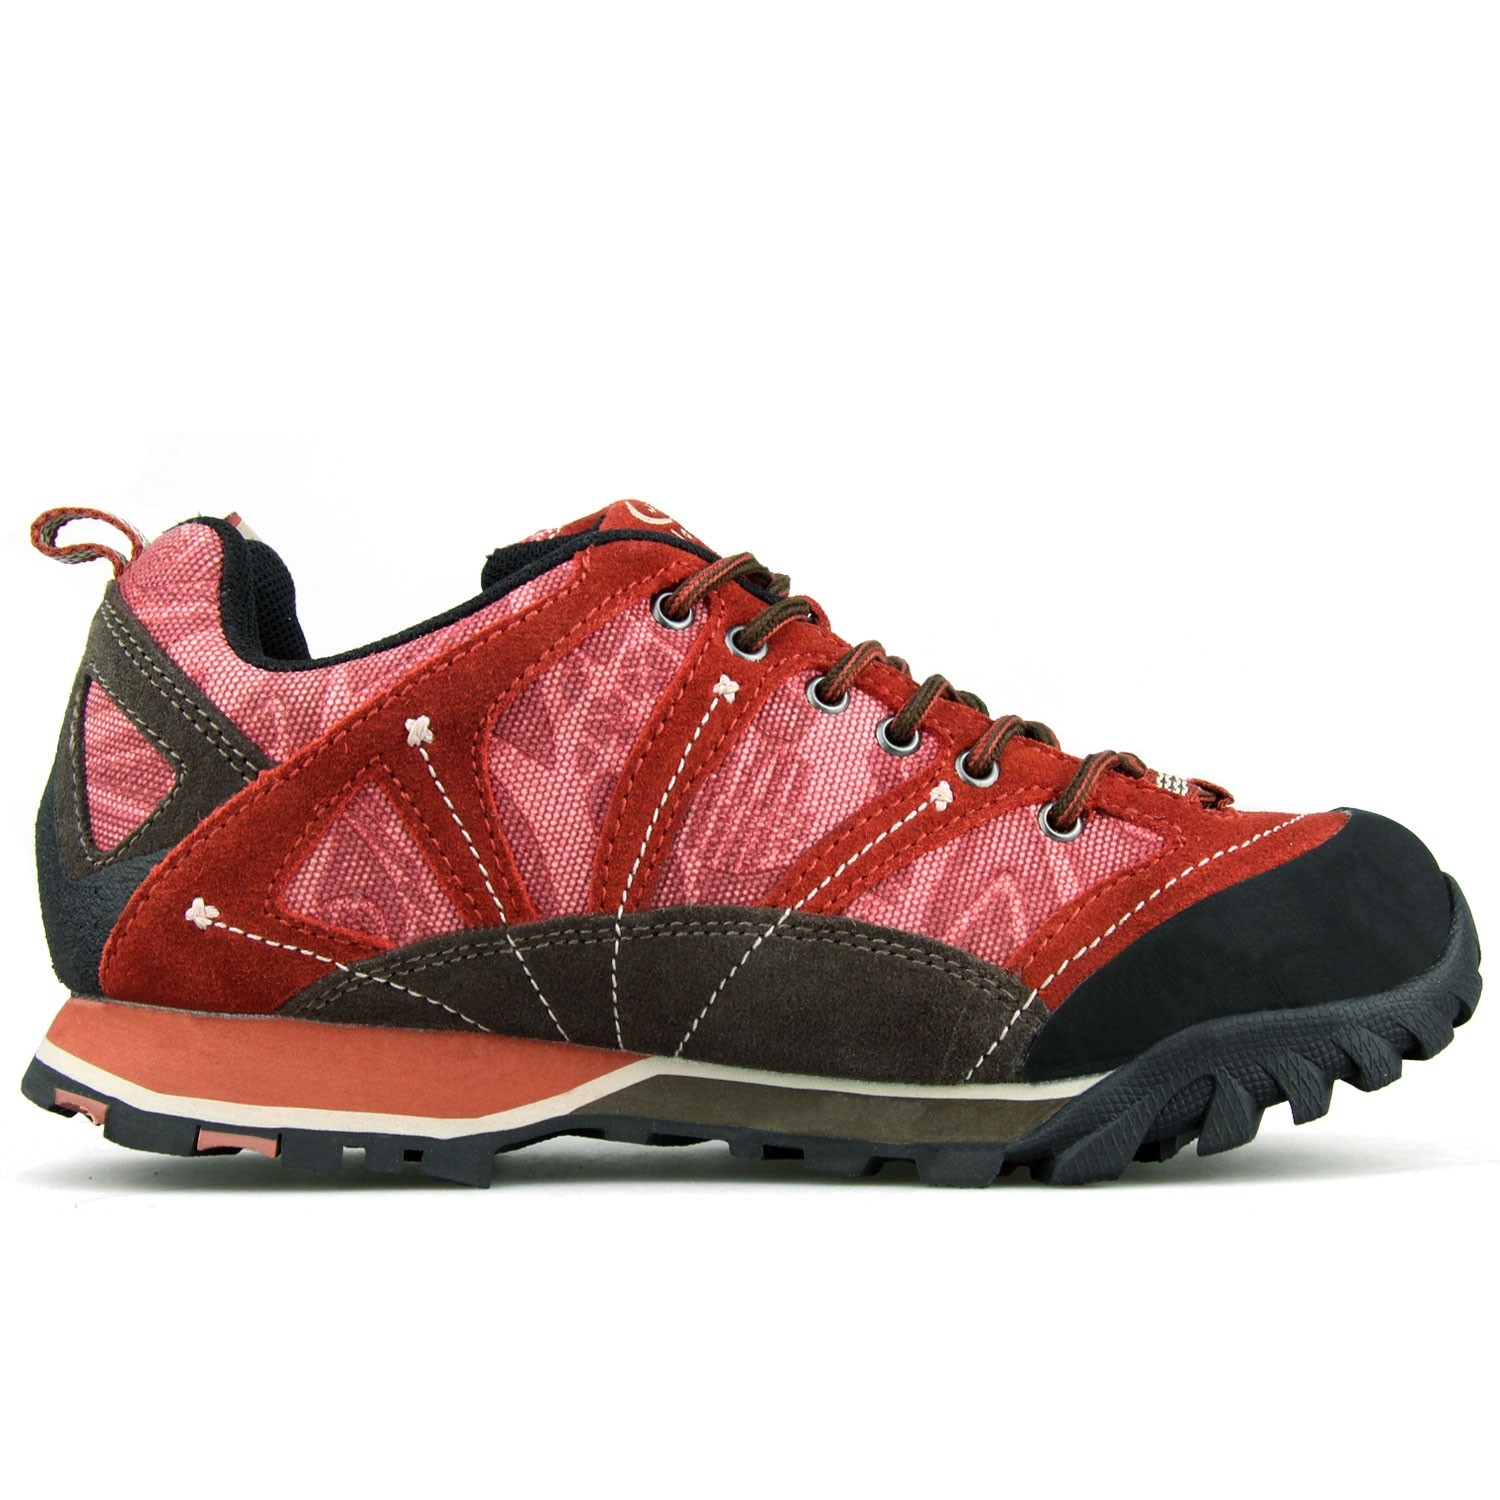 Mens Trail Trekking Shoes Manufacturers, Mens Trail Trekking Shoes Factory, Supply Mens Trail Trekking Shoes